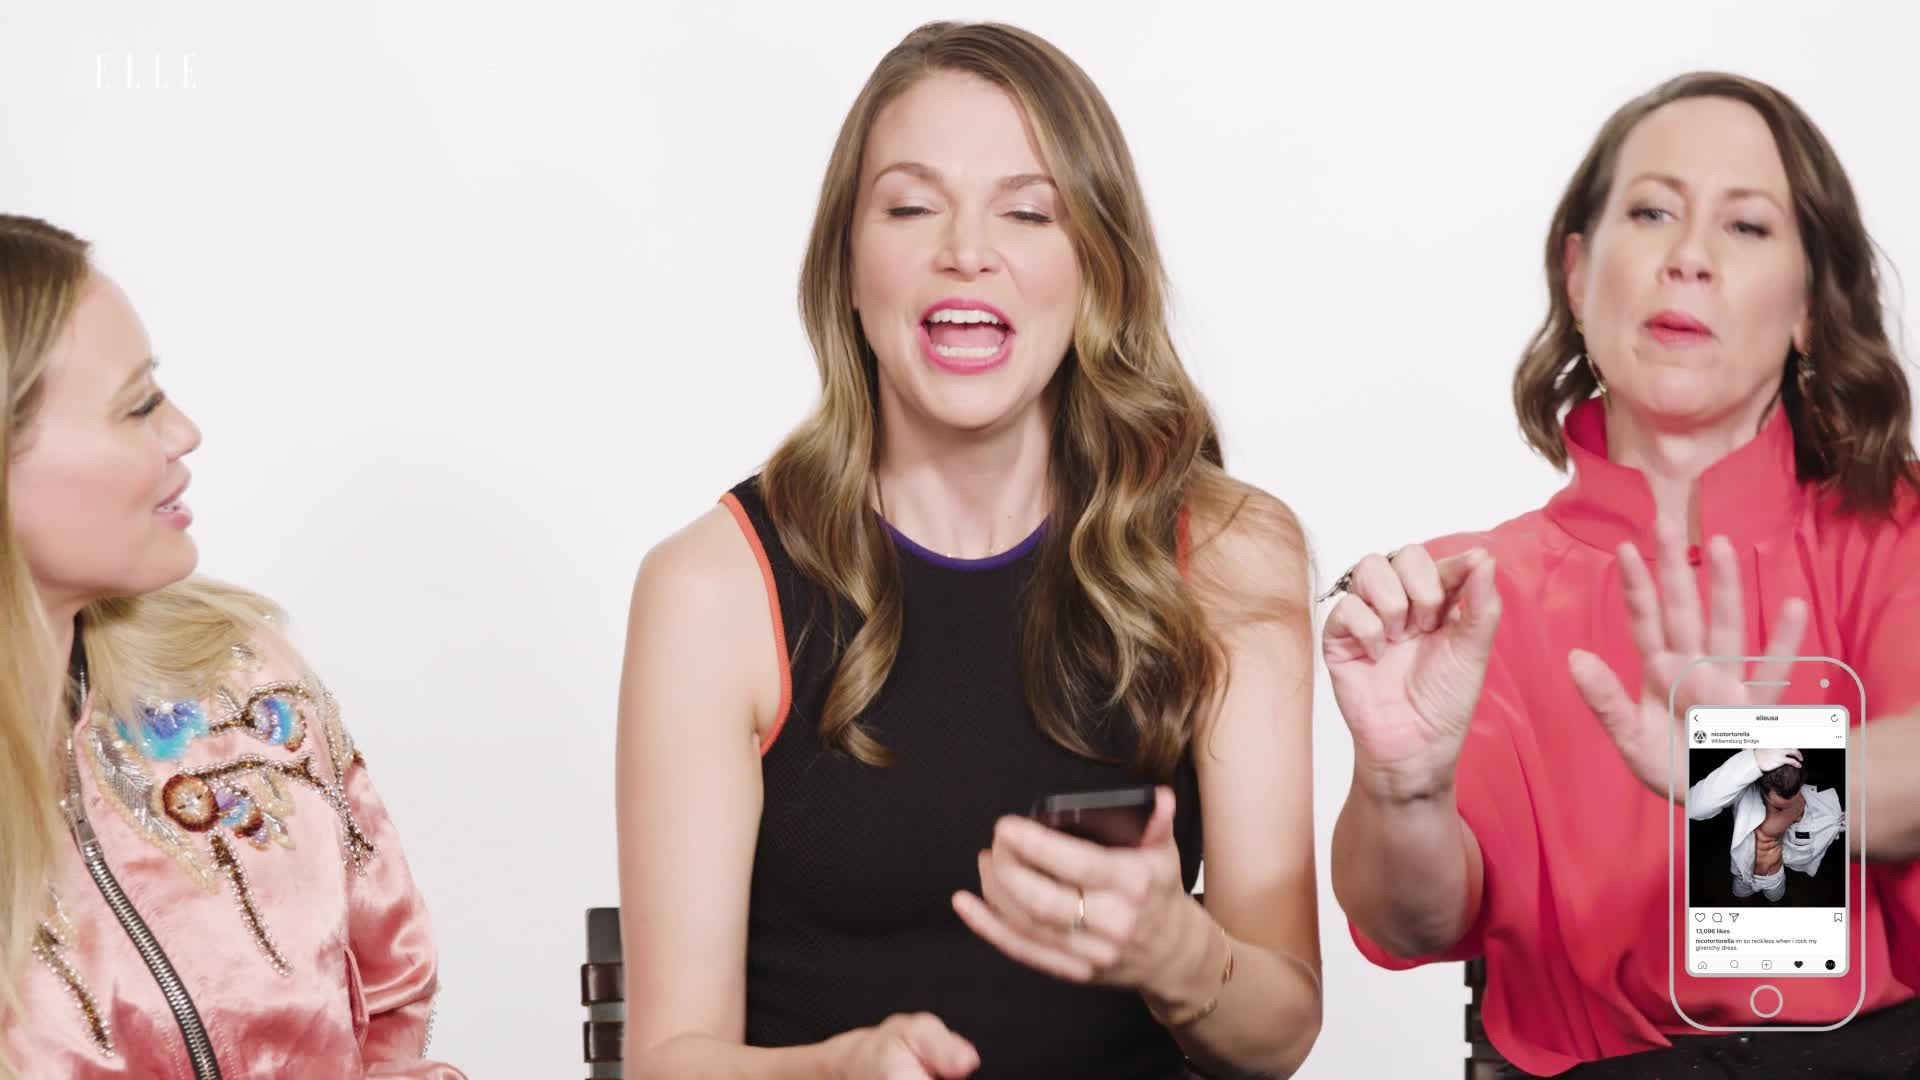 These Juicy 'Younger' Season 6 Details Are One Giant Head-Exploding Emoji